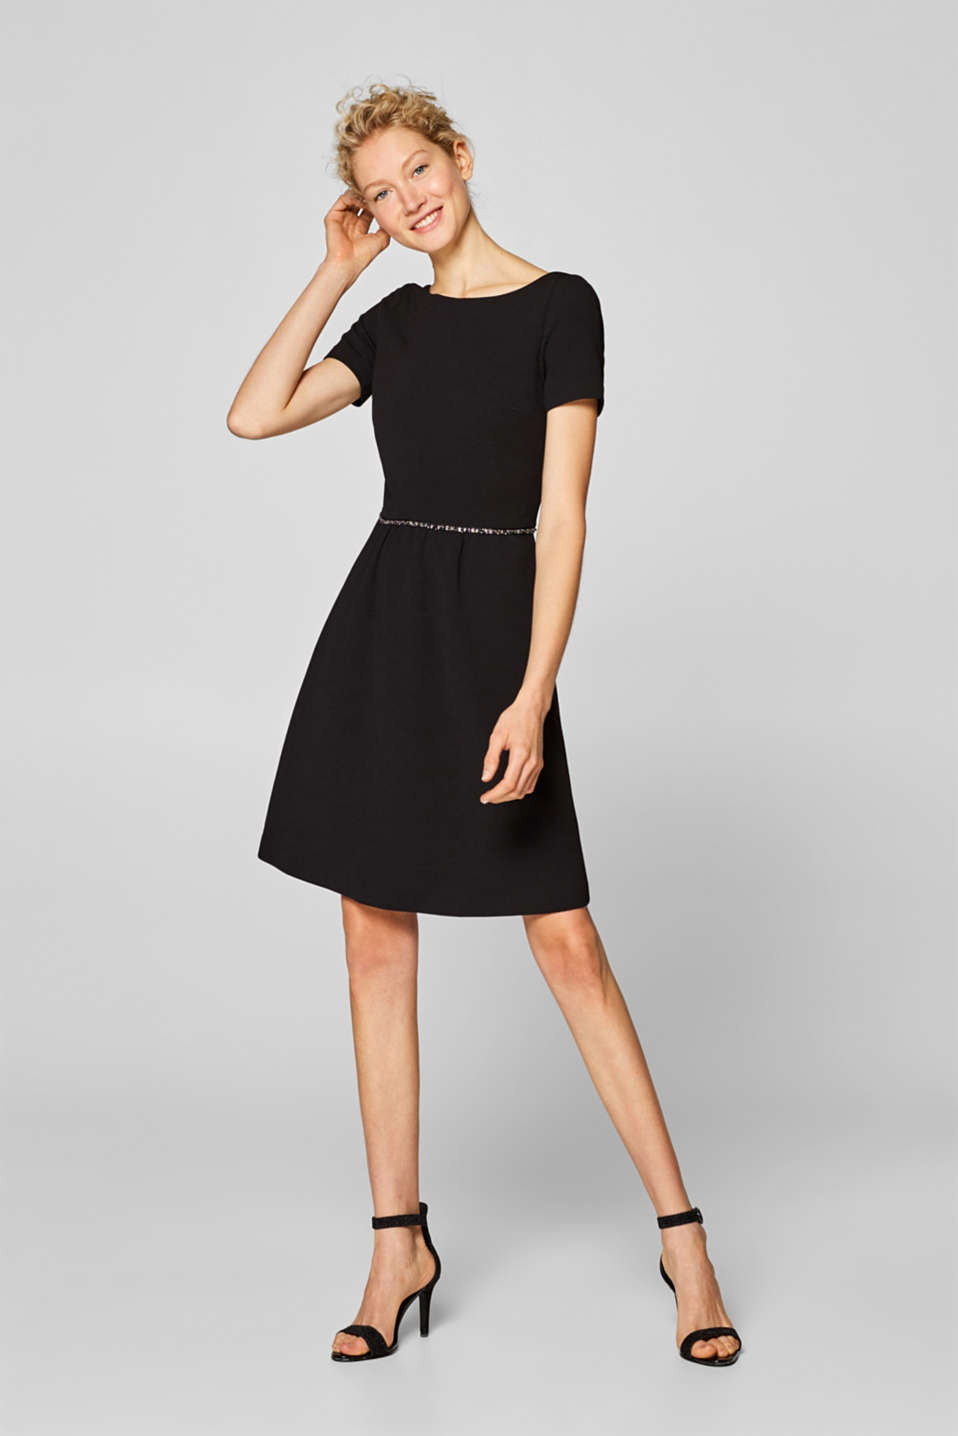 Esprit - Crêpe dress in thick stretch jersey with a rhinestone